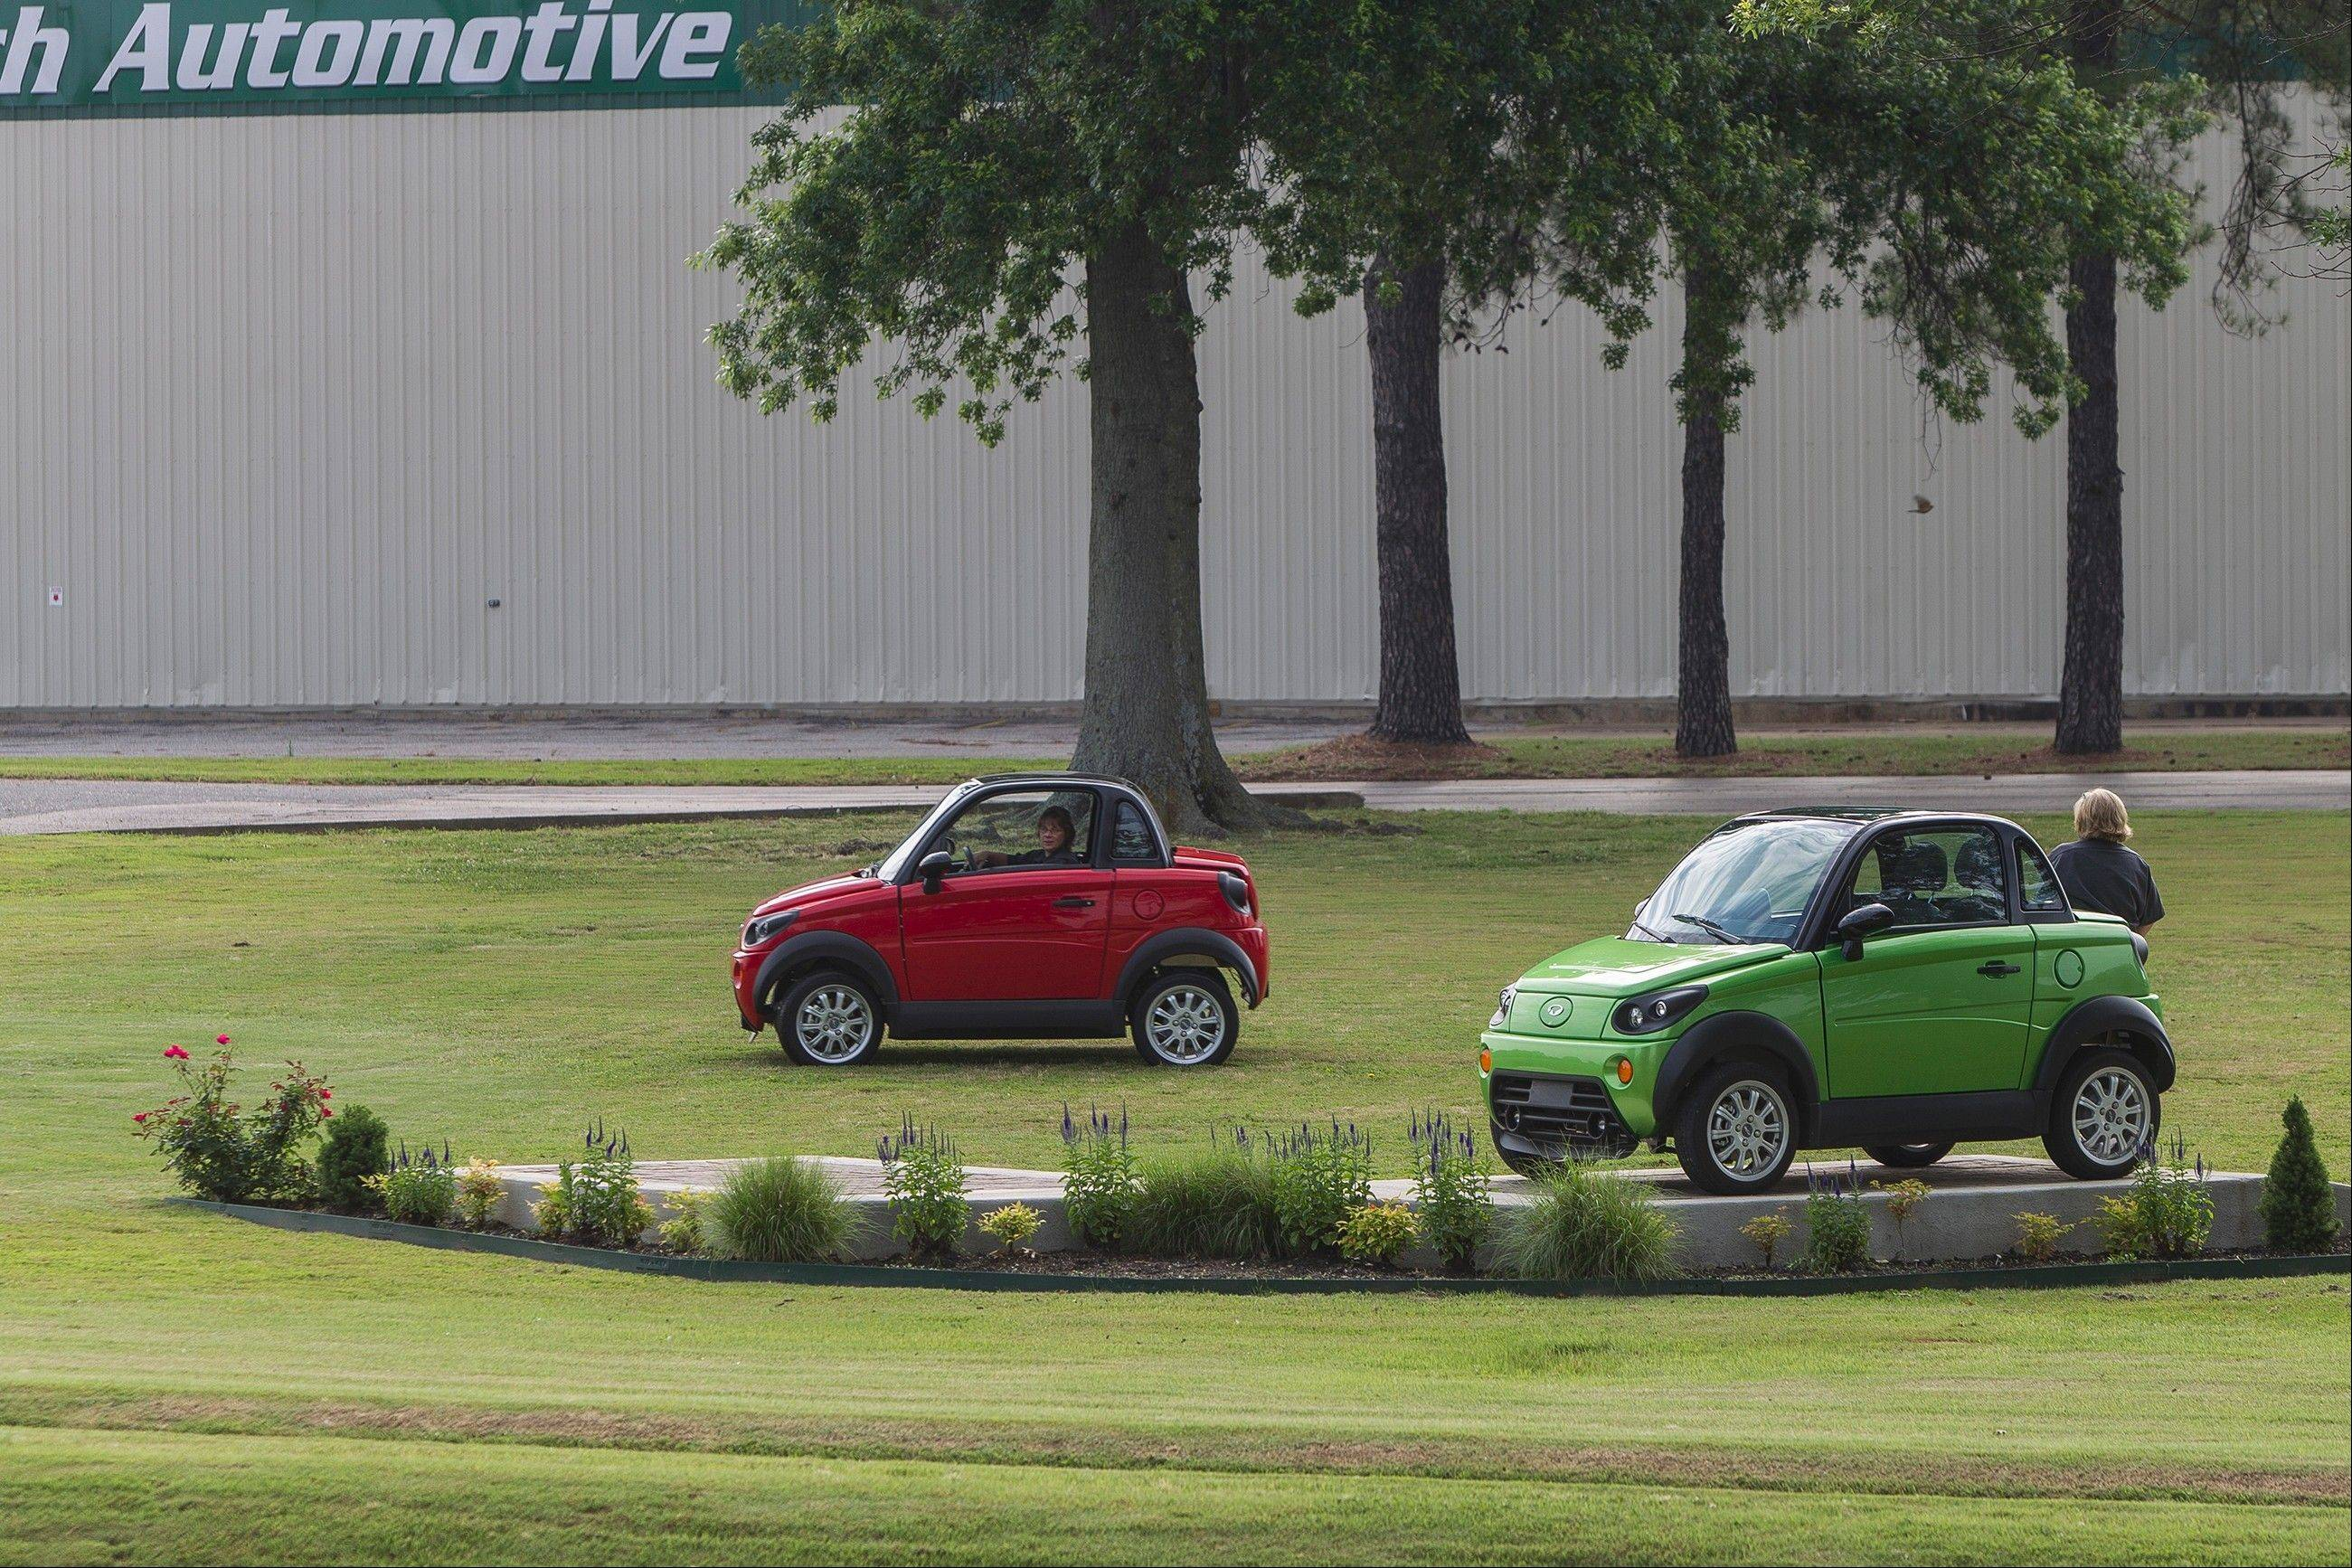 GreenTech Automotive�s MyCar electric vehicles currently come from a temporary factory in Horn Lake, Miss. The company has said it plans to build a state-of-the-art plant in nearby Tunica.